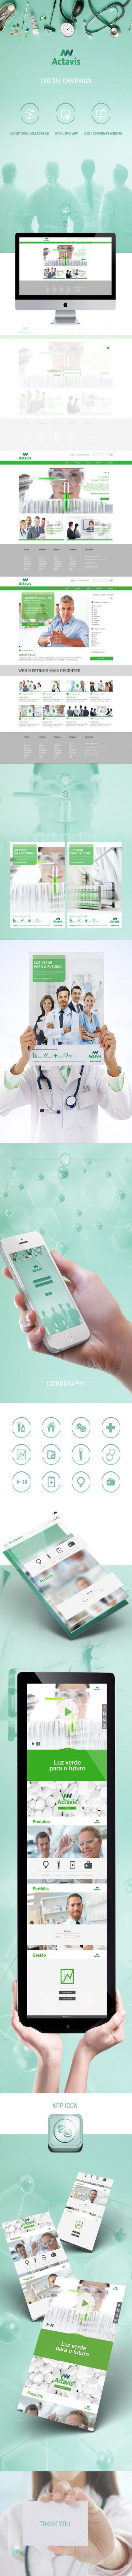 Medical app website 52 best Ideas #medical